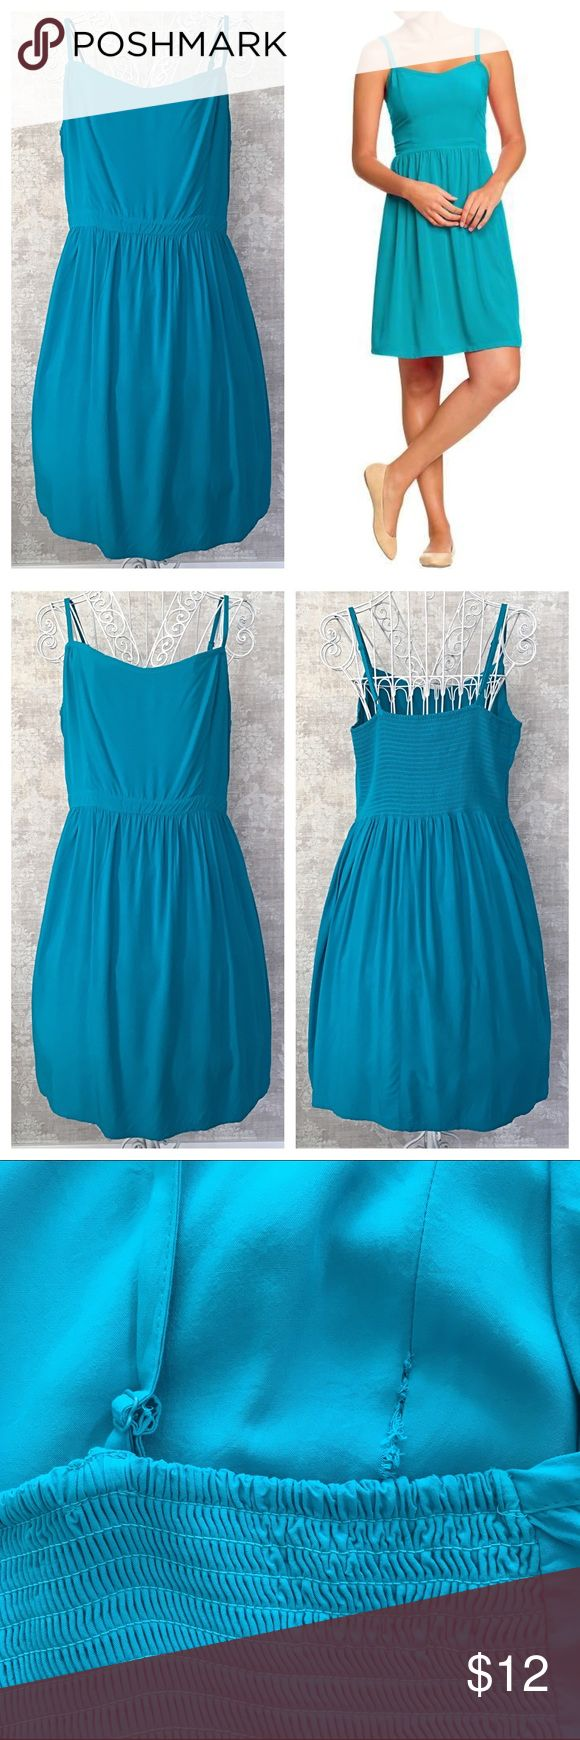 Old Navy Cami Dress ⭐Host Pick!⭐ Old Navy turquoise poplin crepe cami dress, size XL Tall. Pull-on style with a banded waist, adjustable straps and a stretchy smocked back for a great fit. The front bodice is lined and there is a bit of loose stitching on the inside, right side of the dress. Because it's on the inside, it's not visible while wearing the dress. I did include a picture for reference. Otherwise in good used condition with lots of life left! Old Navy Dresses